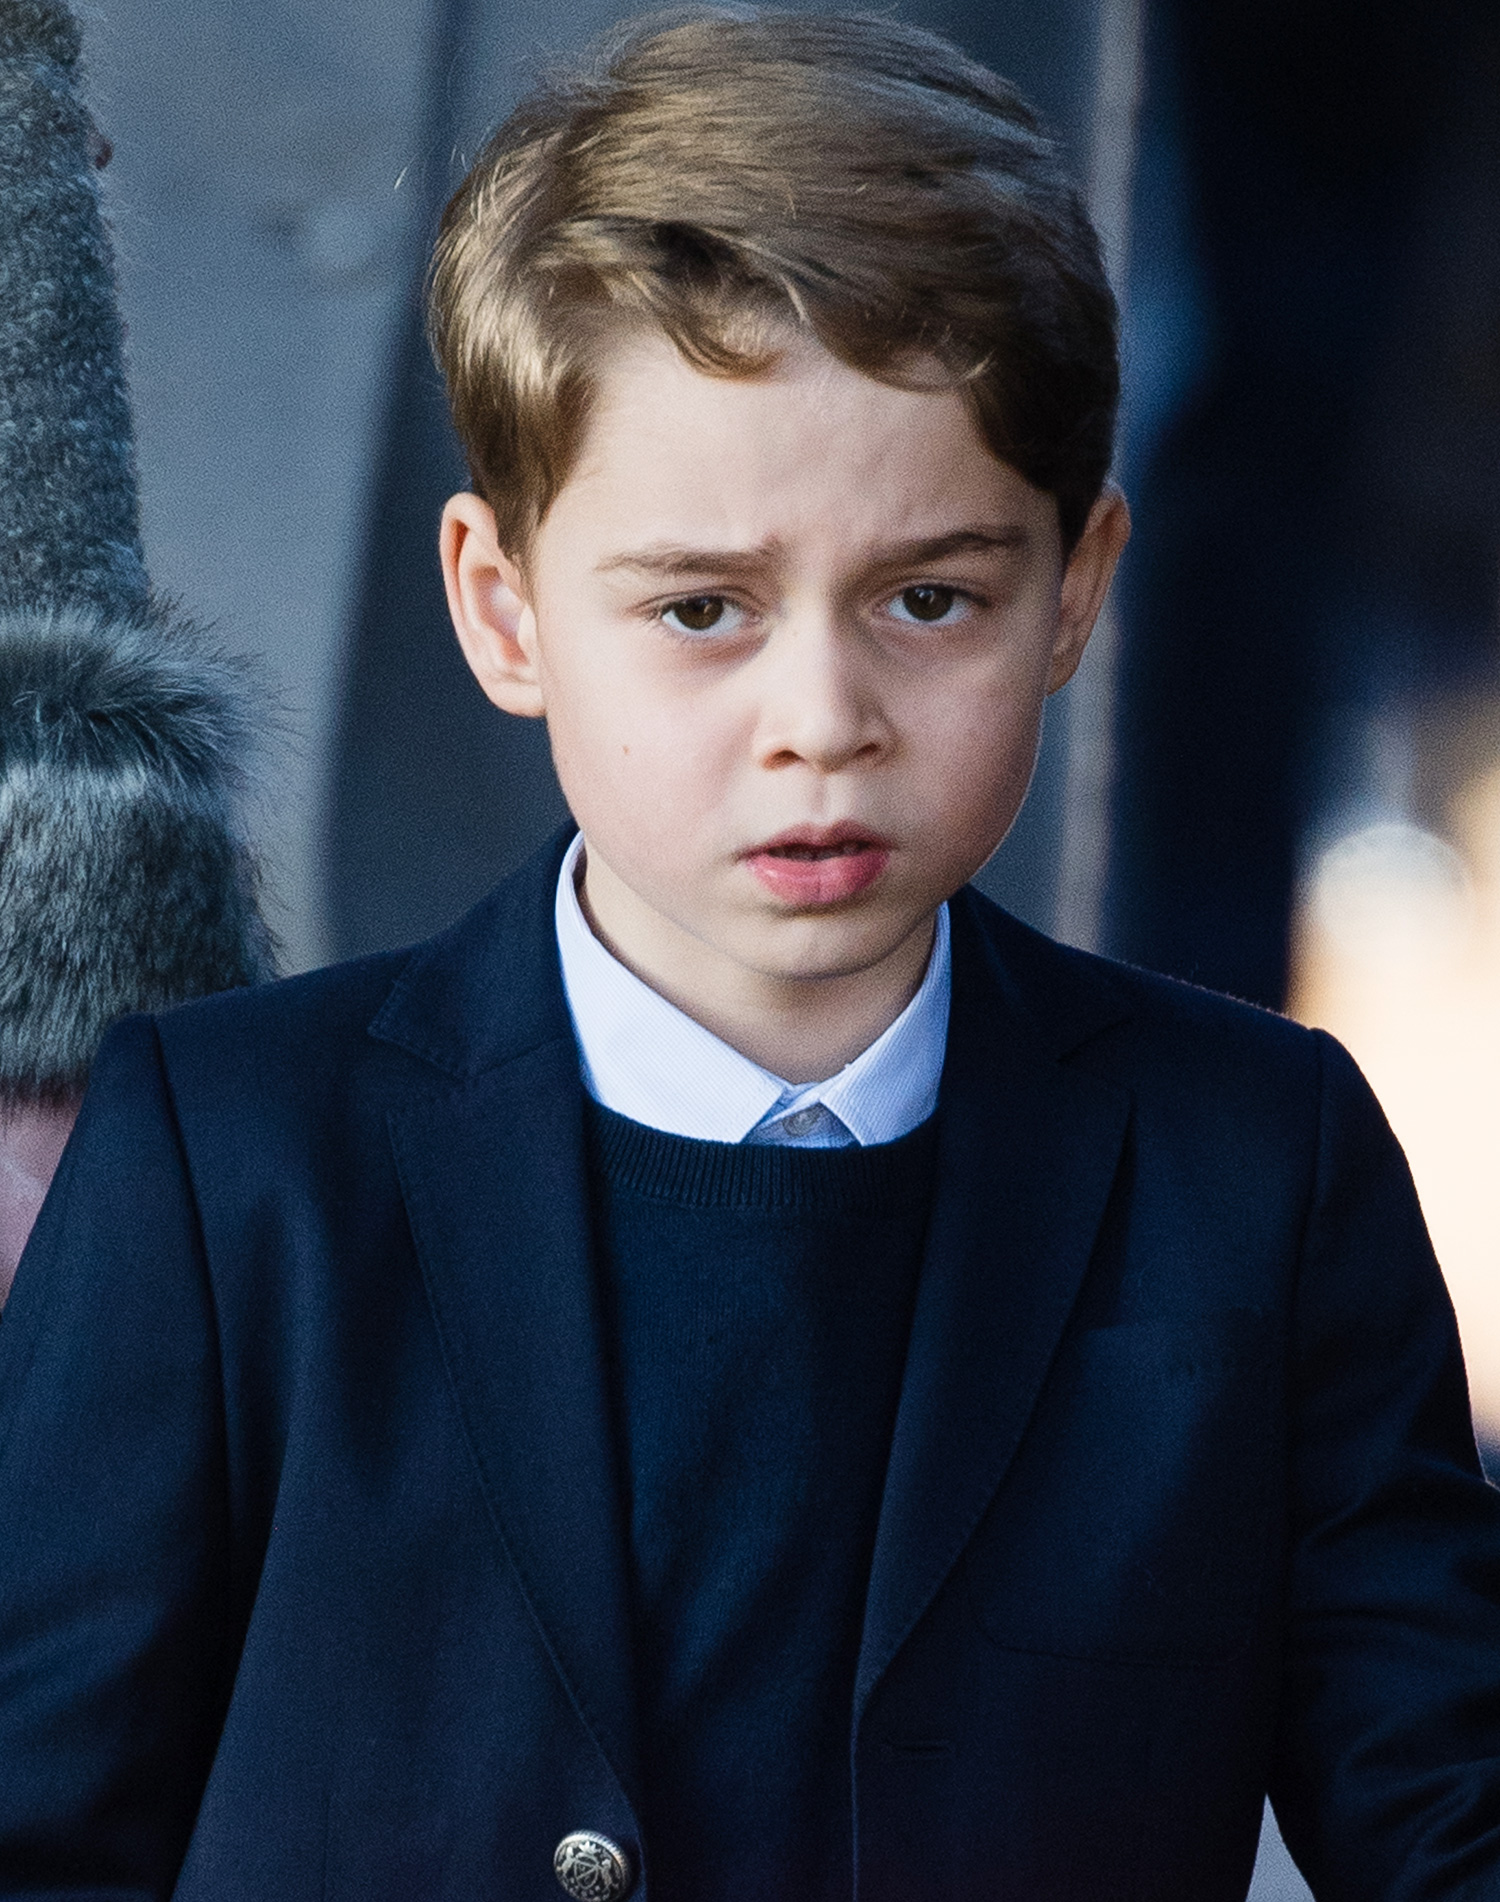 Prince George of Cambridge attends the Christmas Day Church service at Church of St Mary Magdalene on the Sandringham estate on December 25, 2019 in King's Lynn, United Kingdom